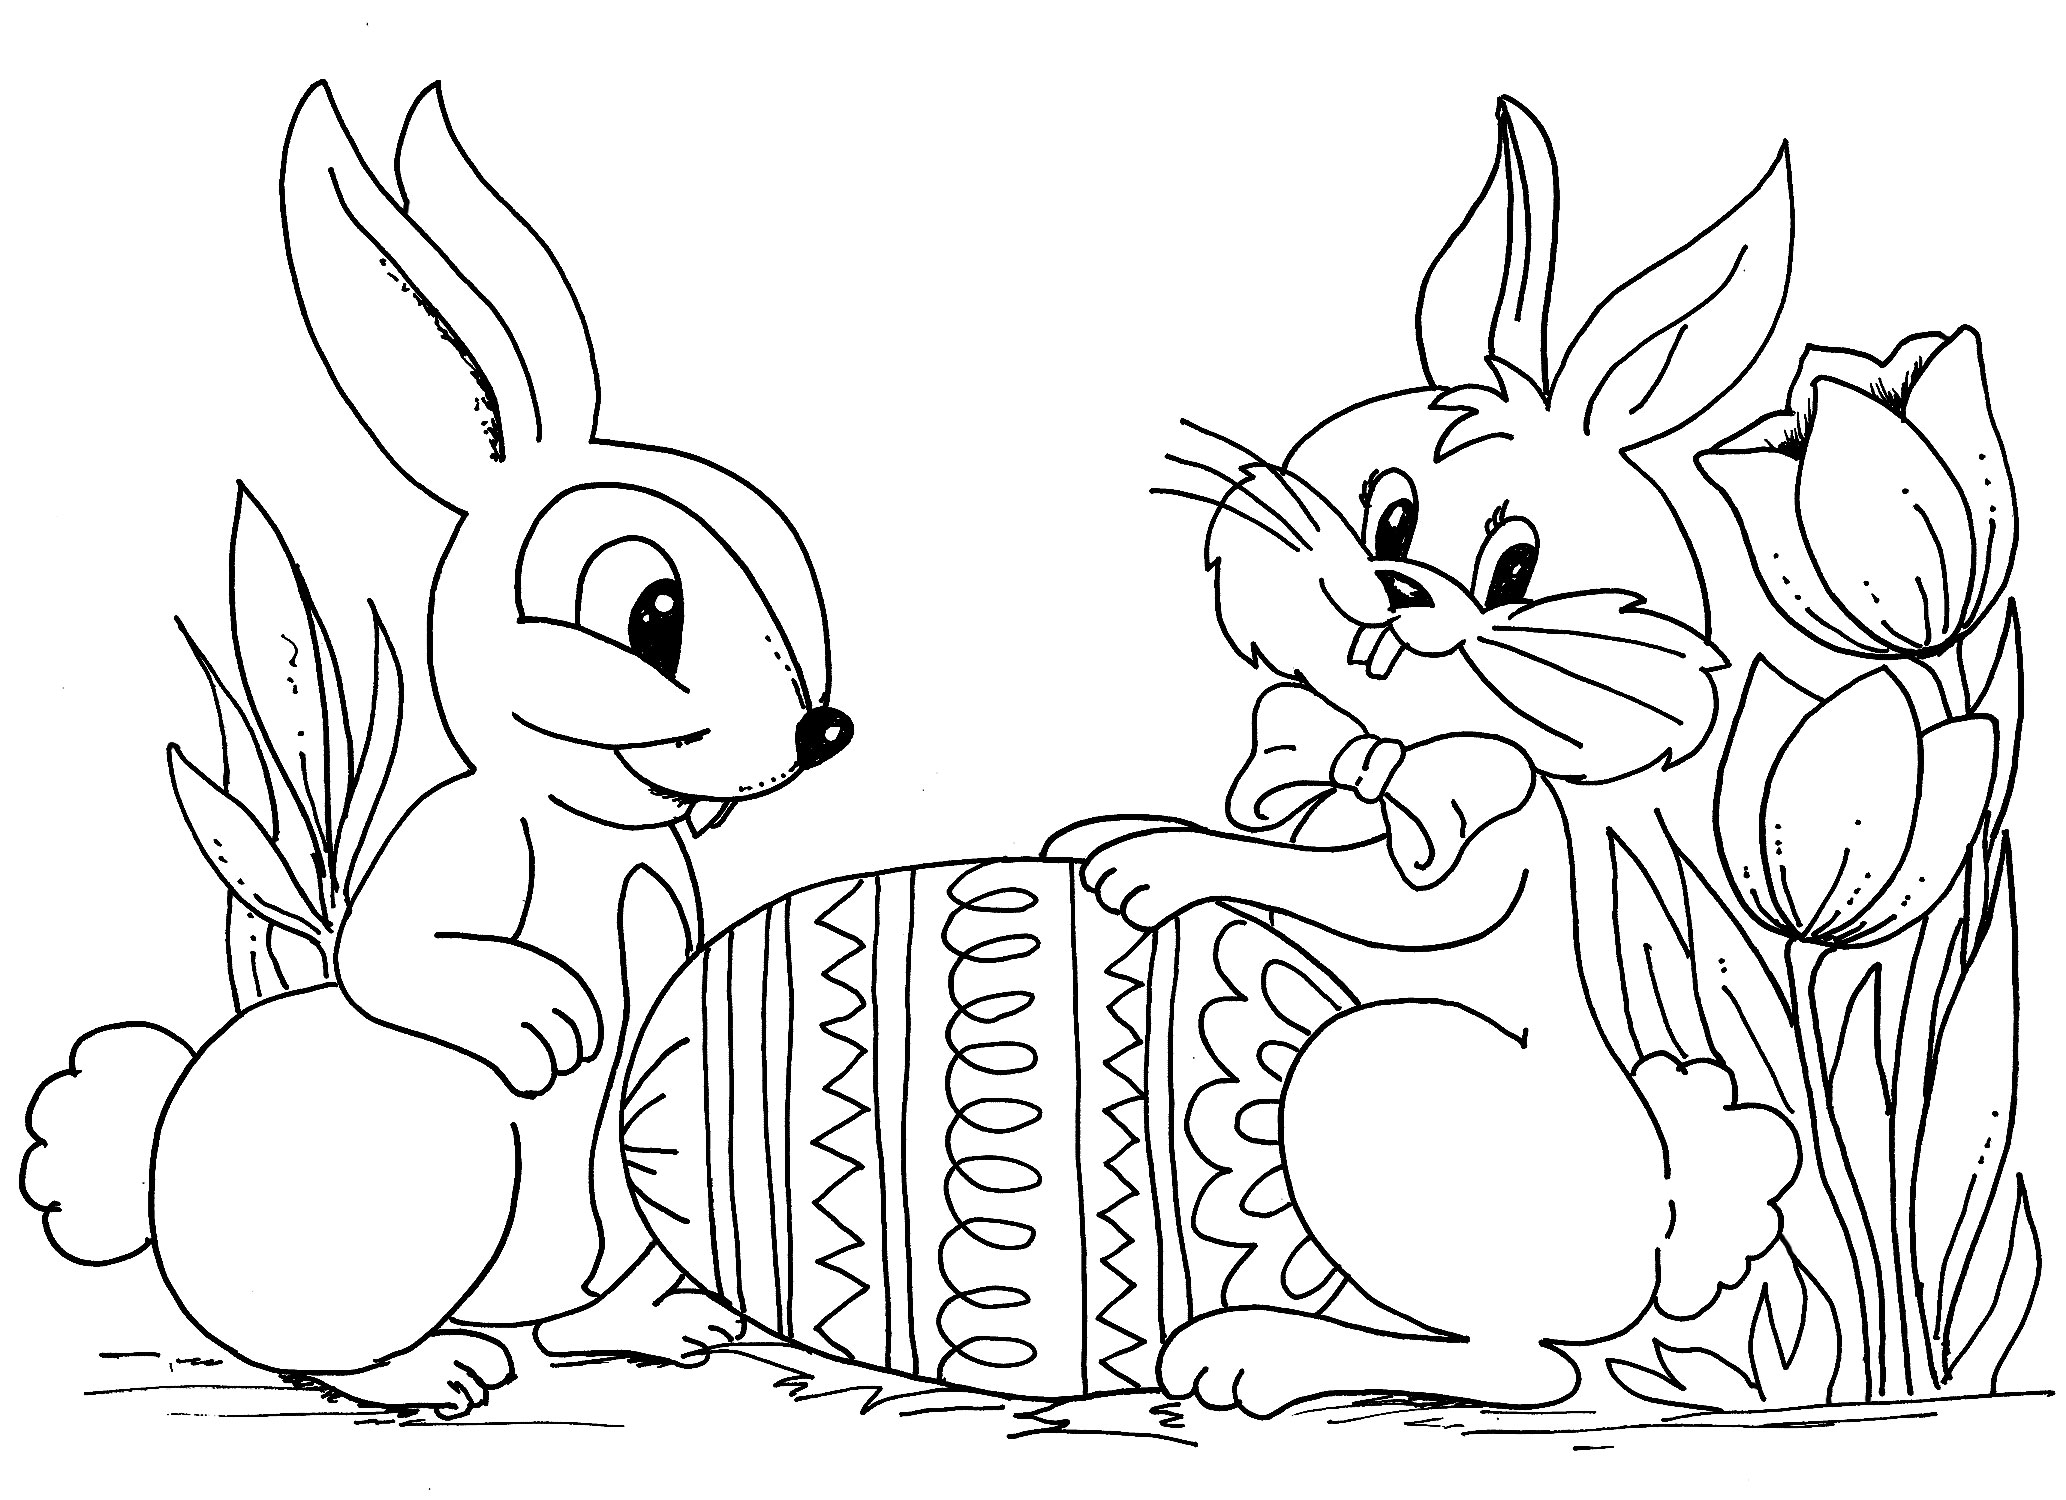 Printable Coloring Easter Pages – Color Bros Collection Of Delighted Bunny Print Out Coloring Pages Easter for Kids Crazy Printable